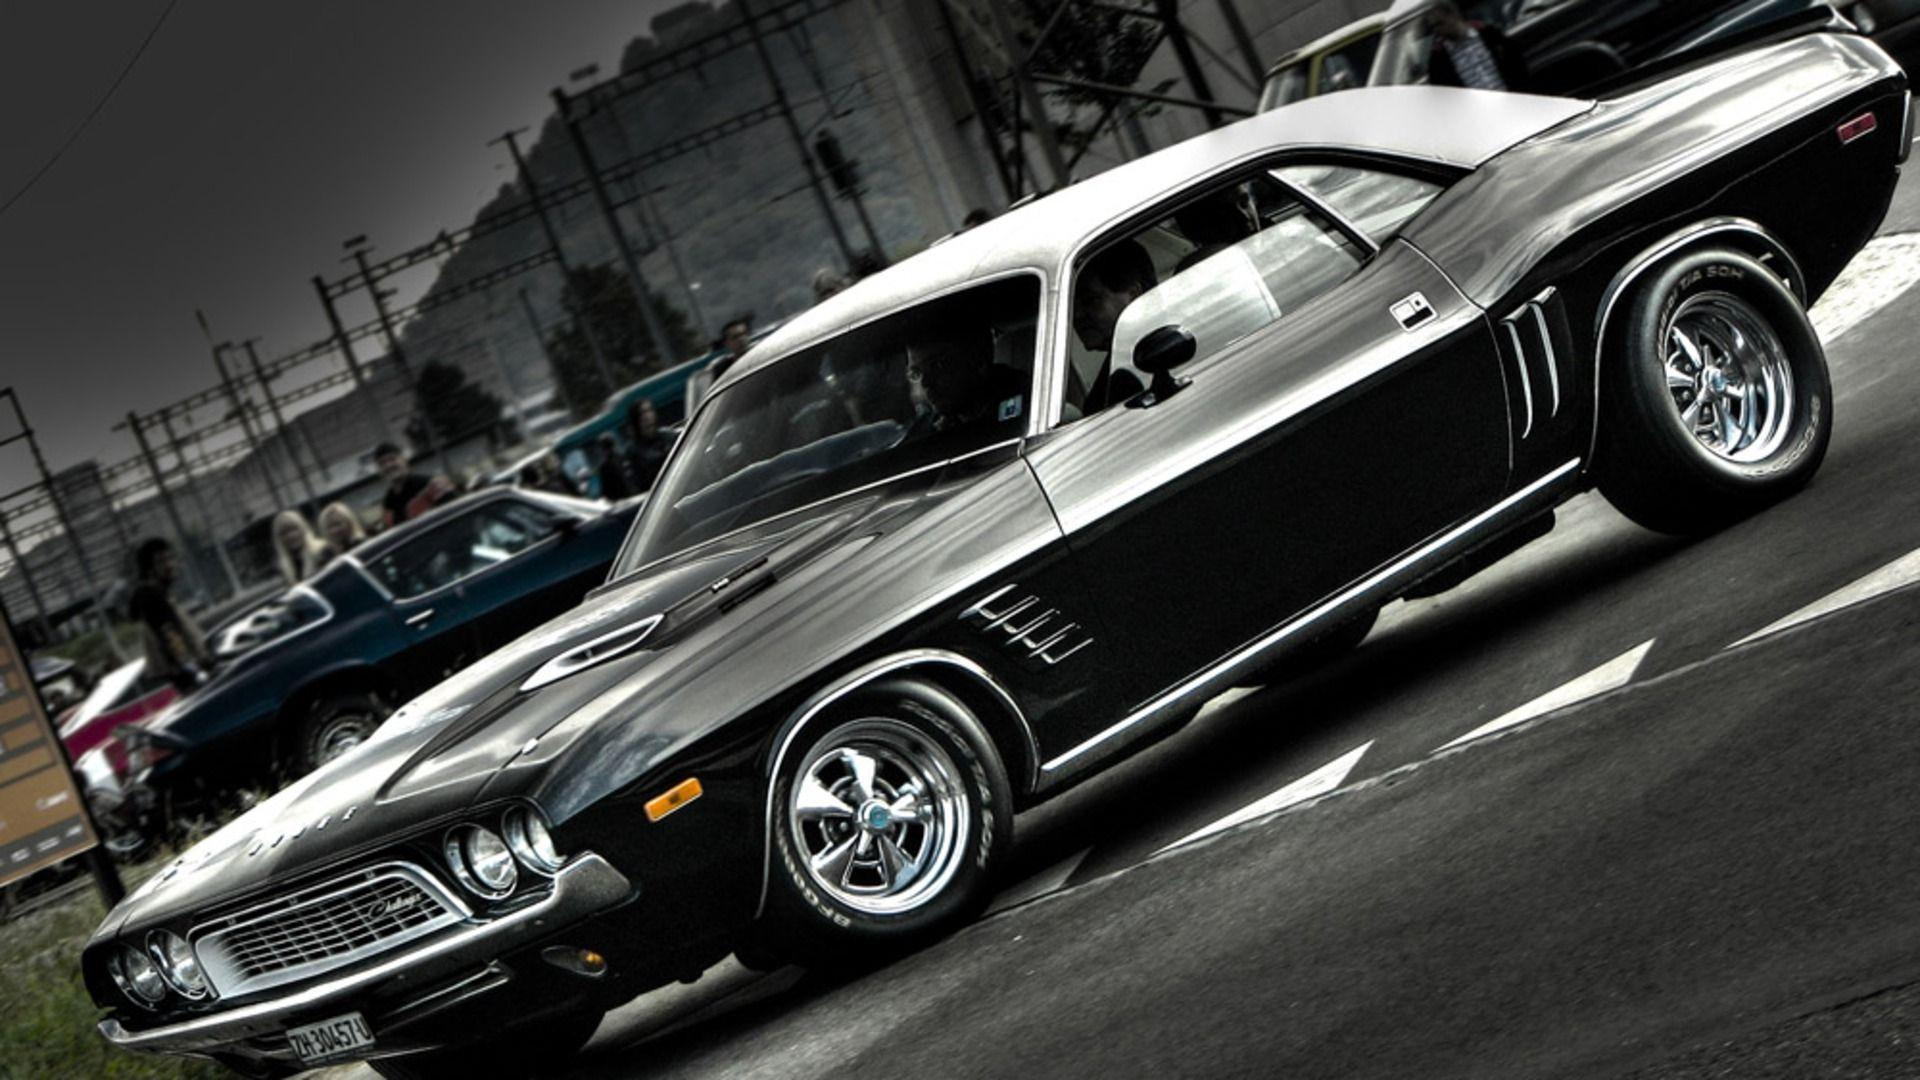 new wallpapers muscle car - photo #16